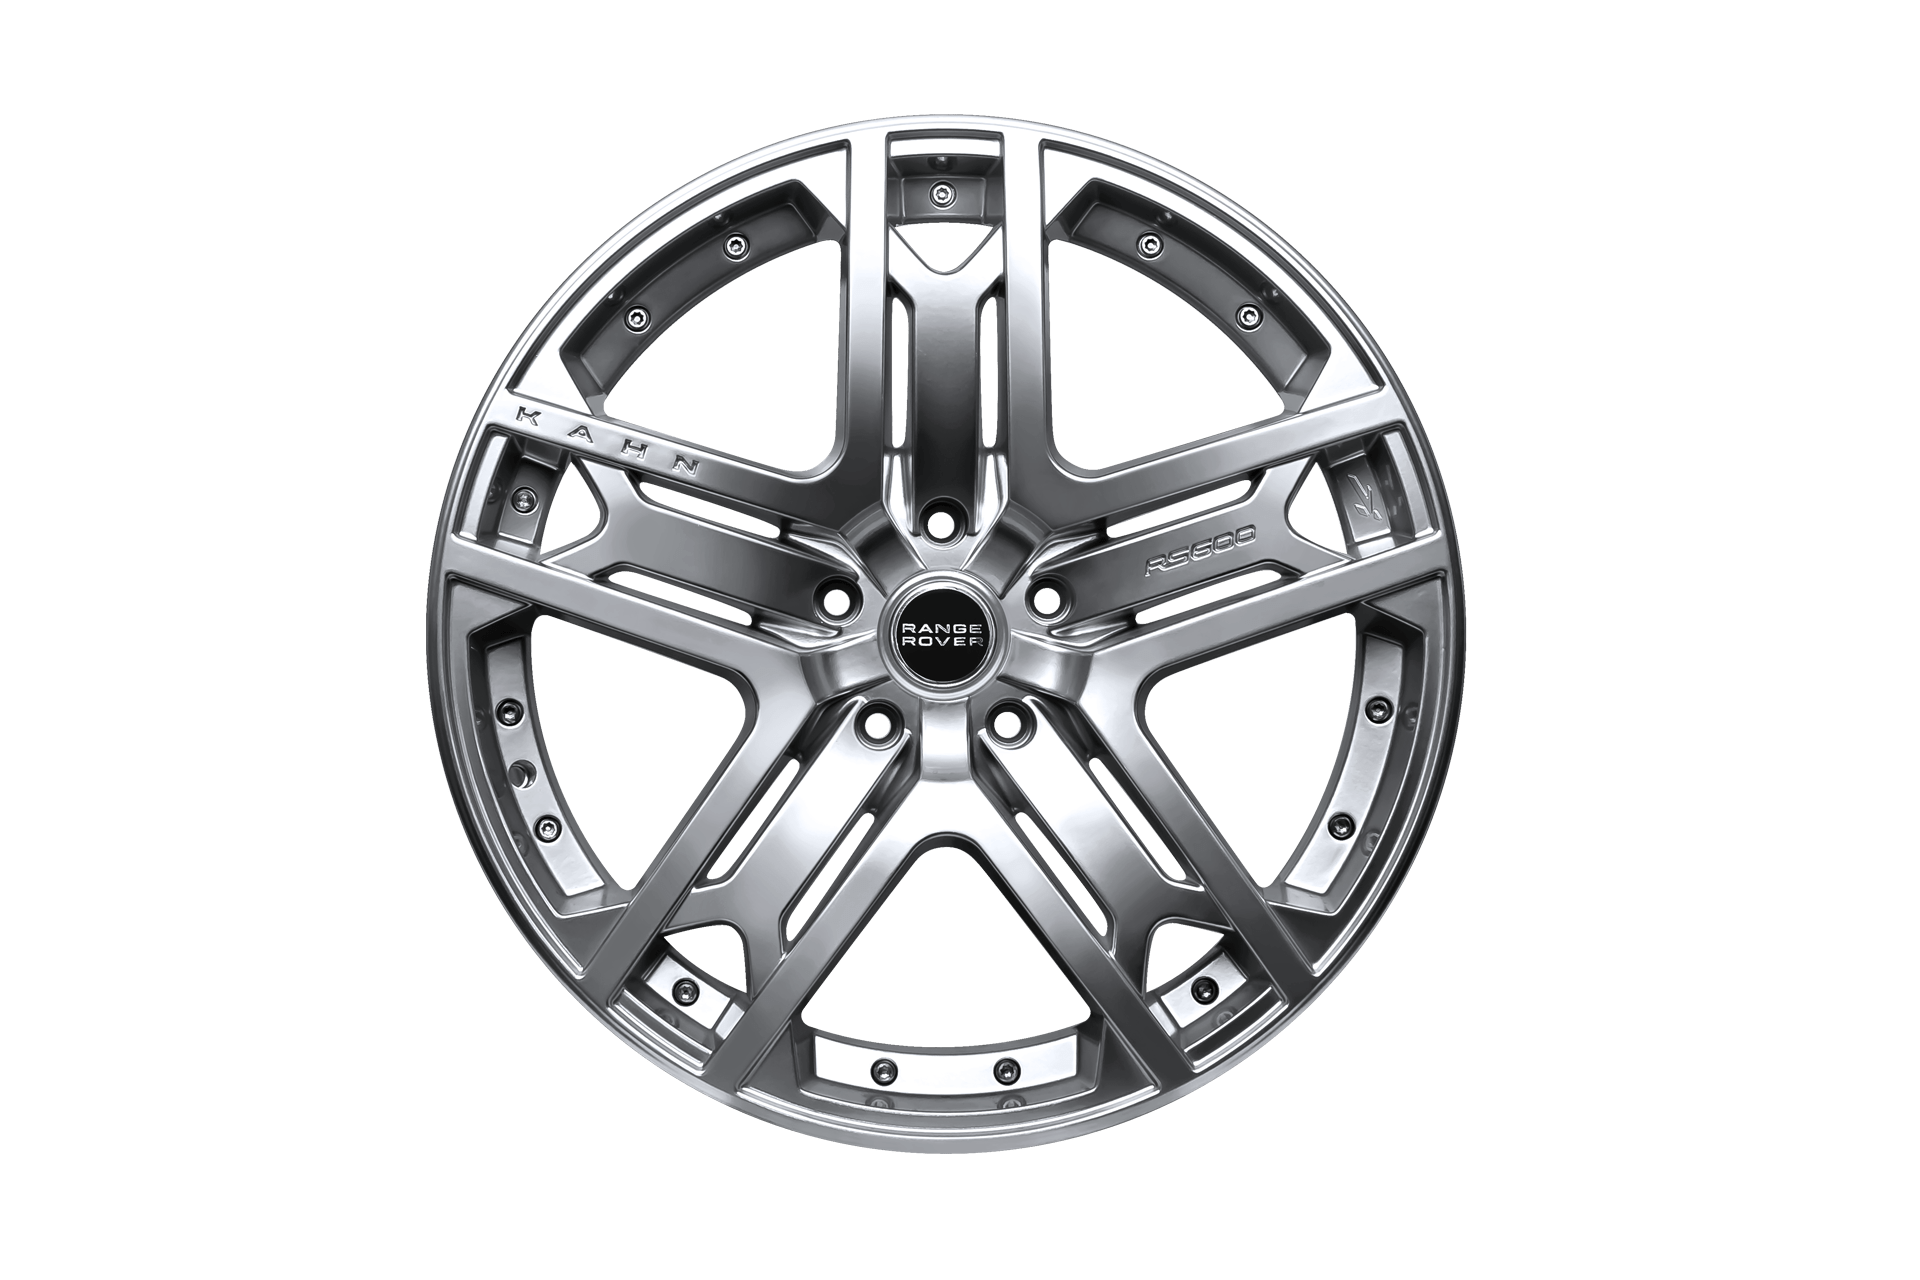 Range Rover Sport (2018-Present) Rs600 Light Alloy Wheels by Kahn - Image 2368